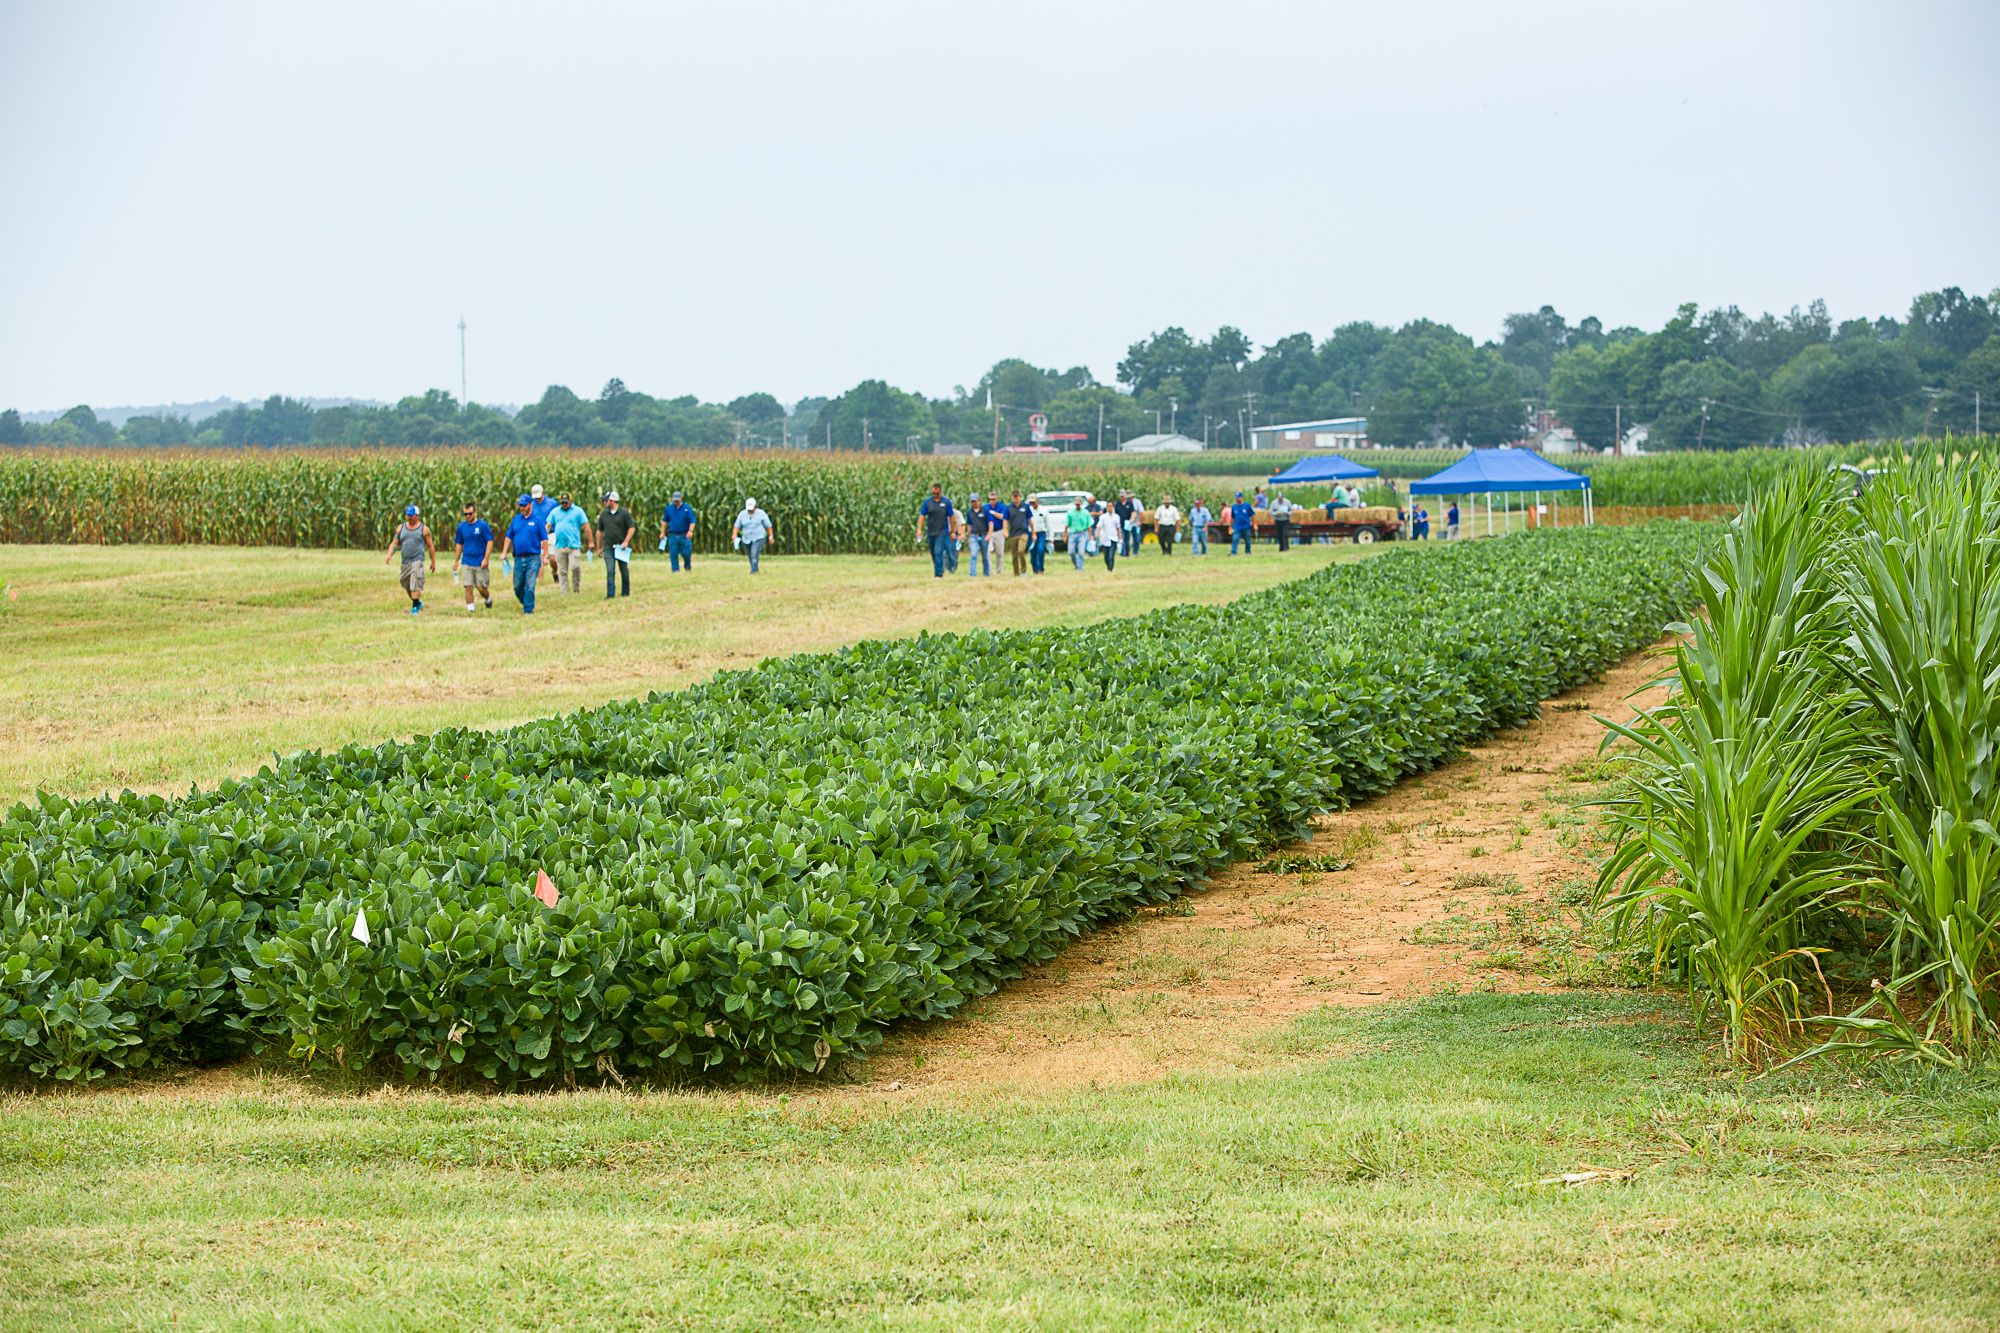 UK to host Corn, Soybean and Tobacco Field Day